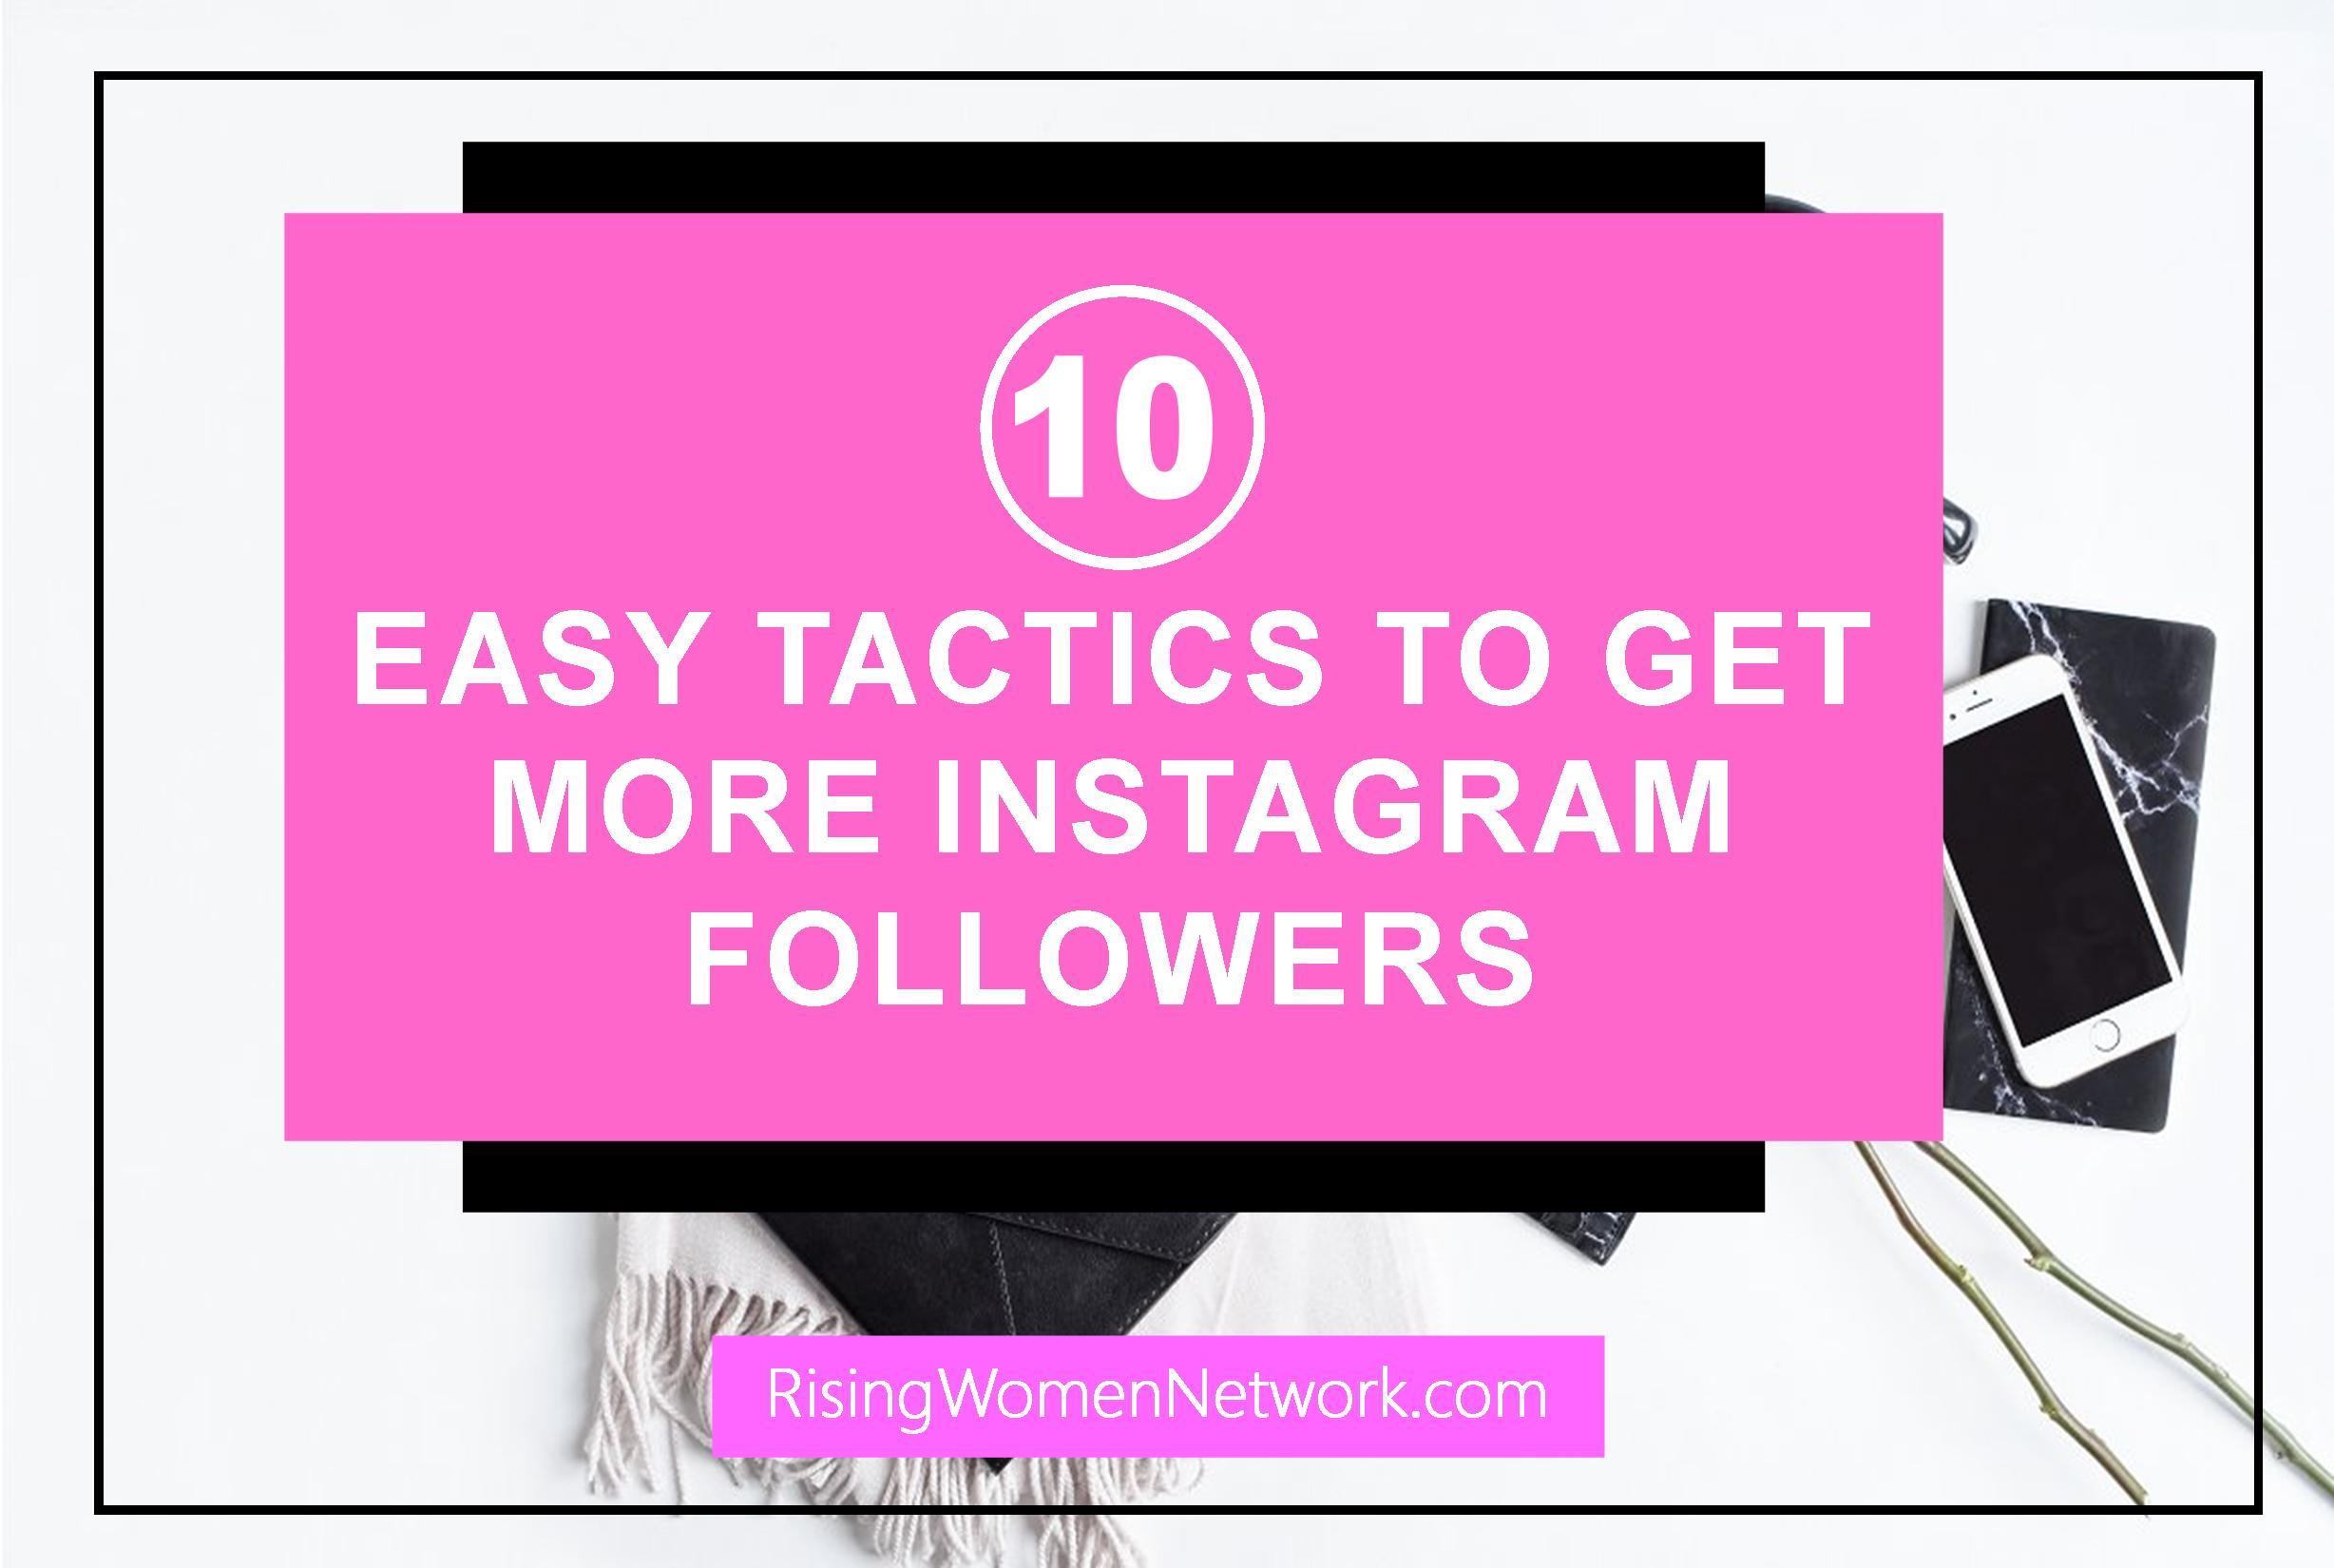 We want to help you increase your Instagram followers. There's no reason with hard work and these tools, you can't stand out amidst users on Instagram.